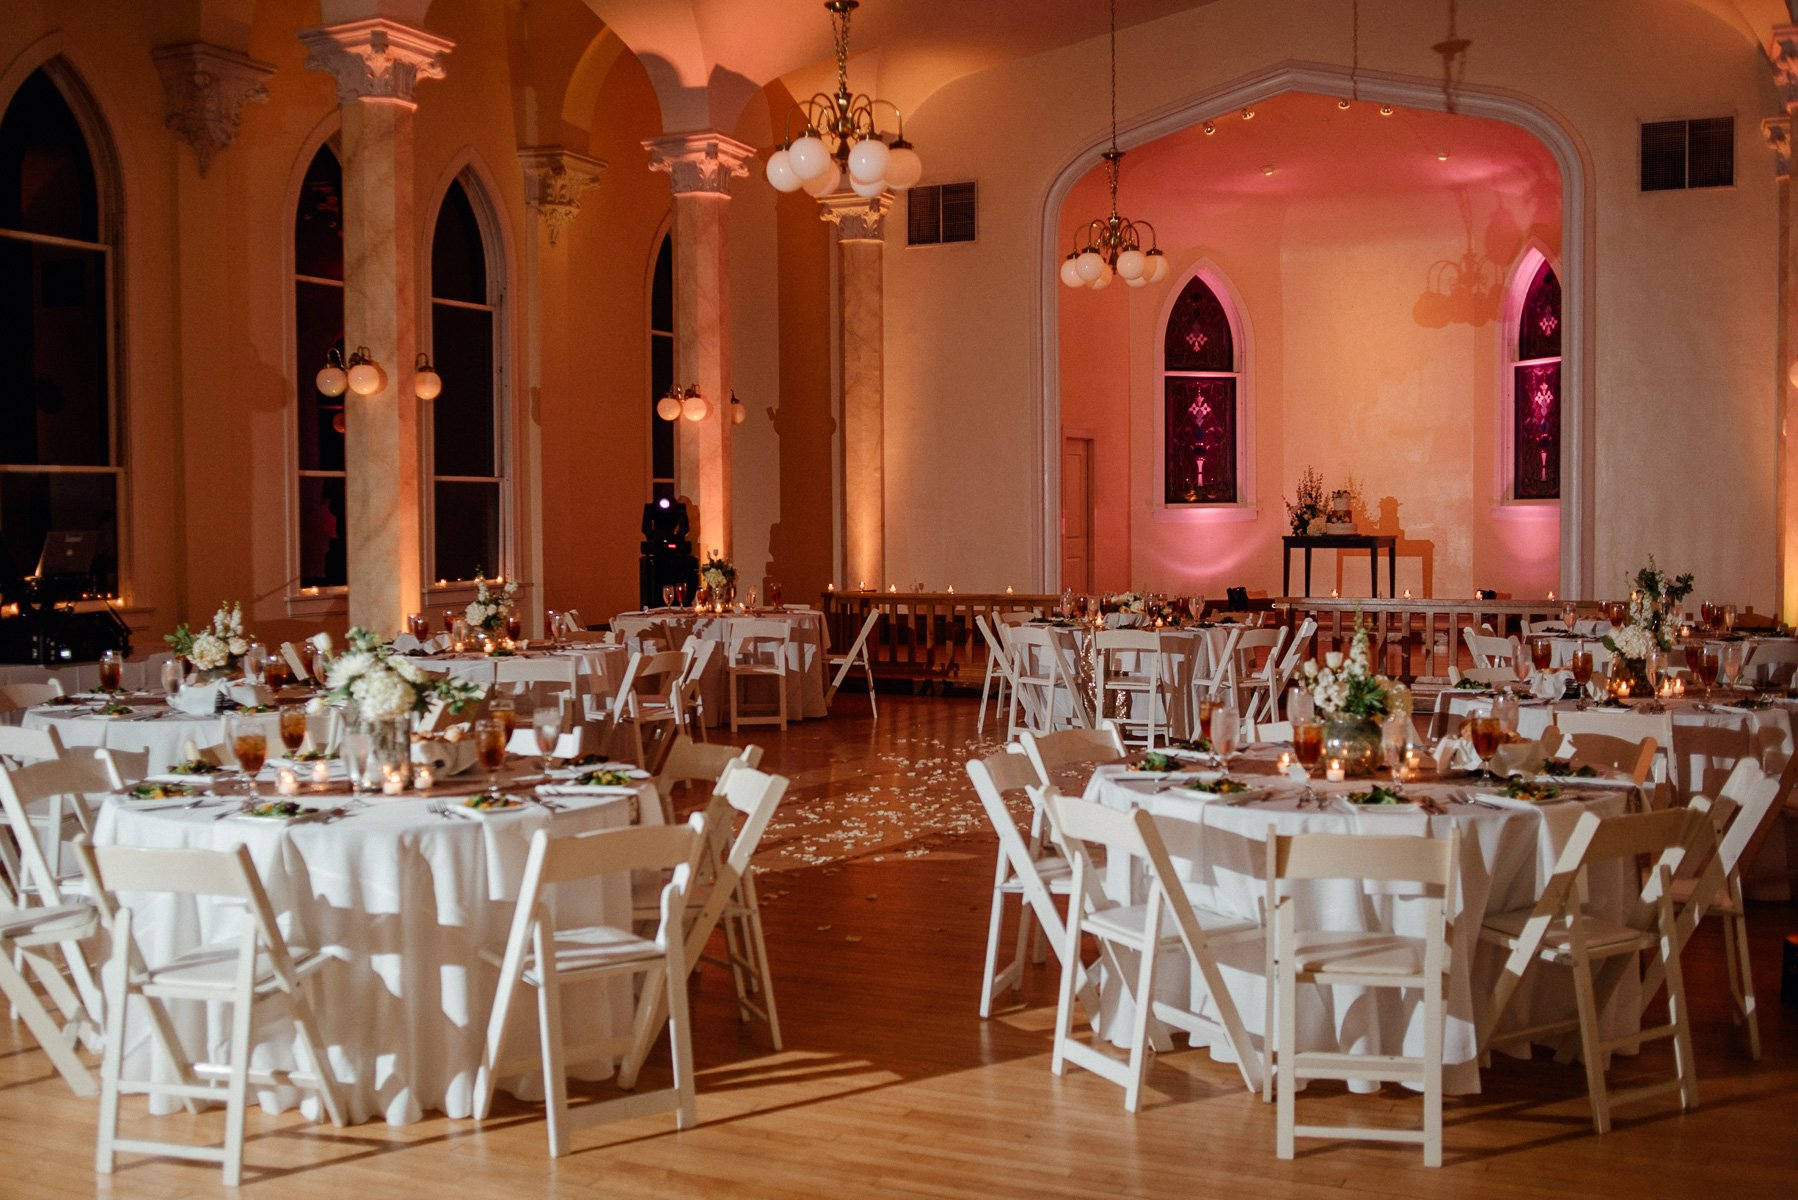 winter wedding at victory arts center in fort worth, wedding reception set up for 80 people,